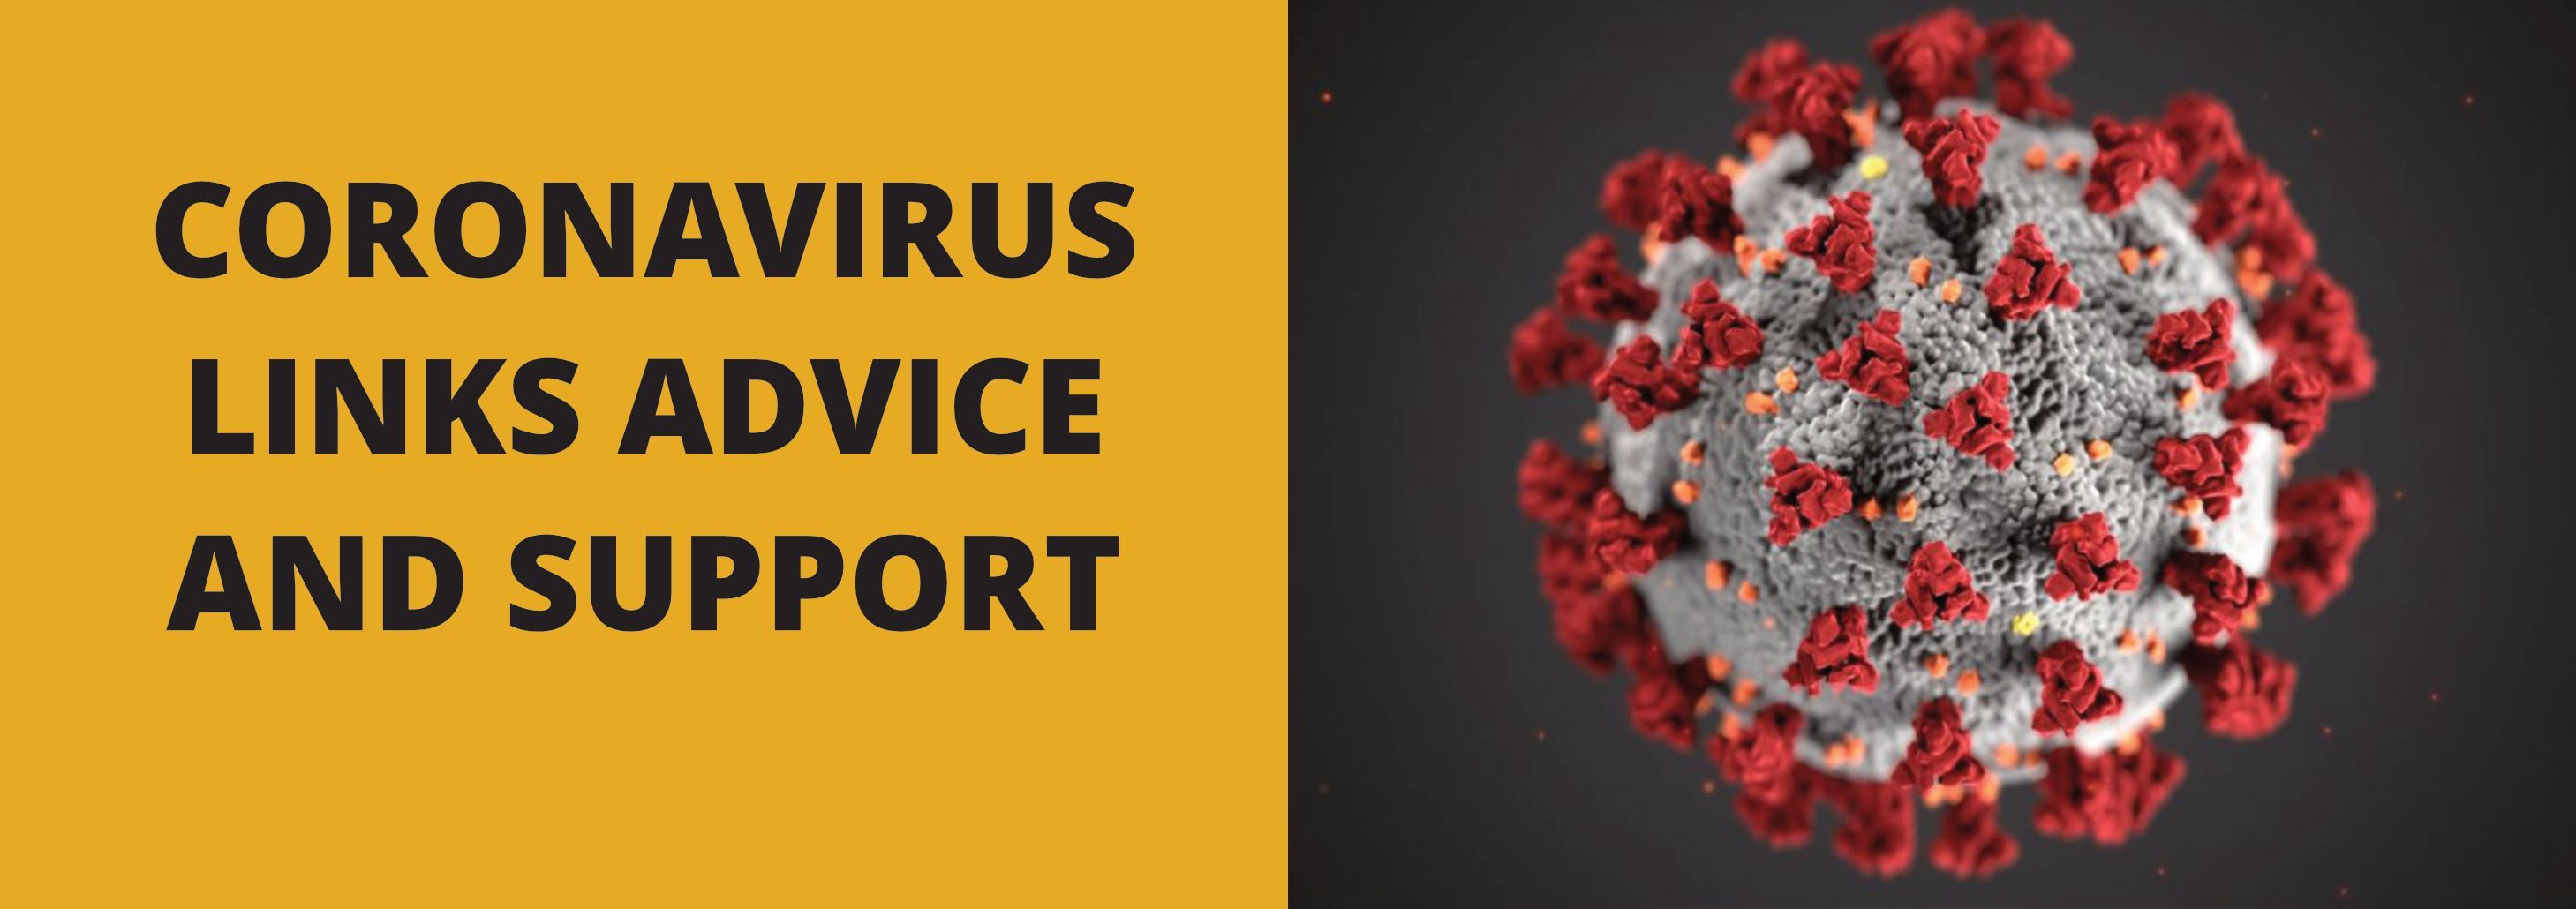 Coronavirus_support_advice_splash